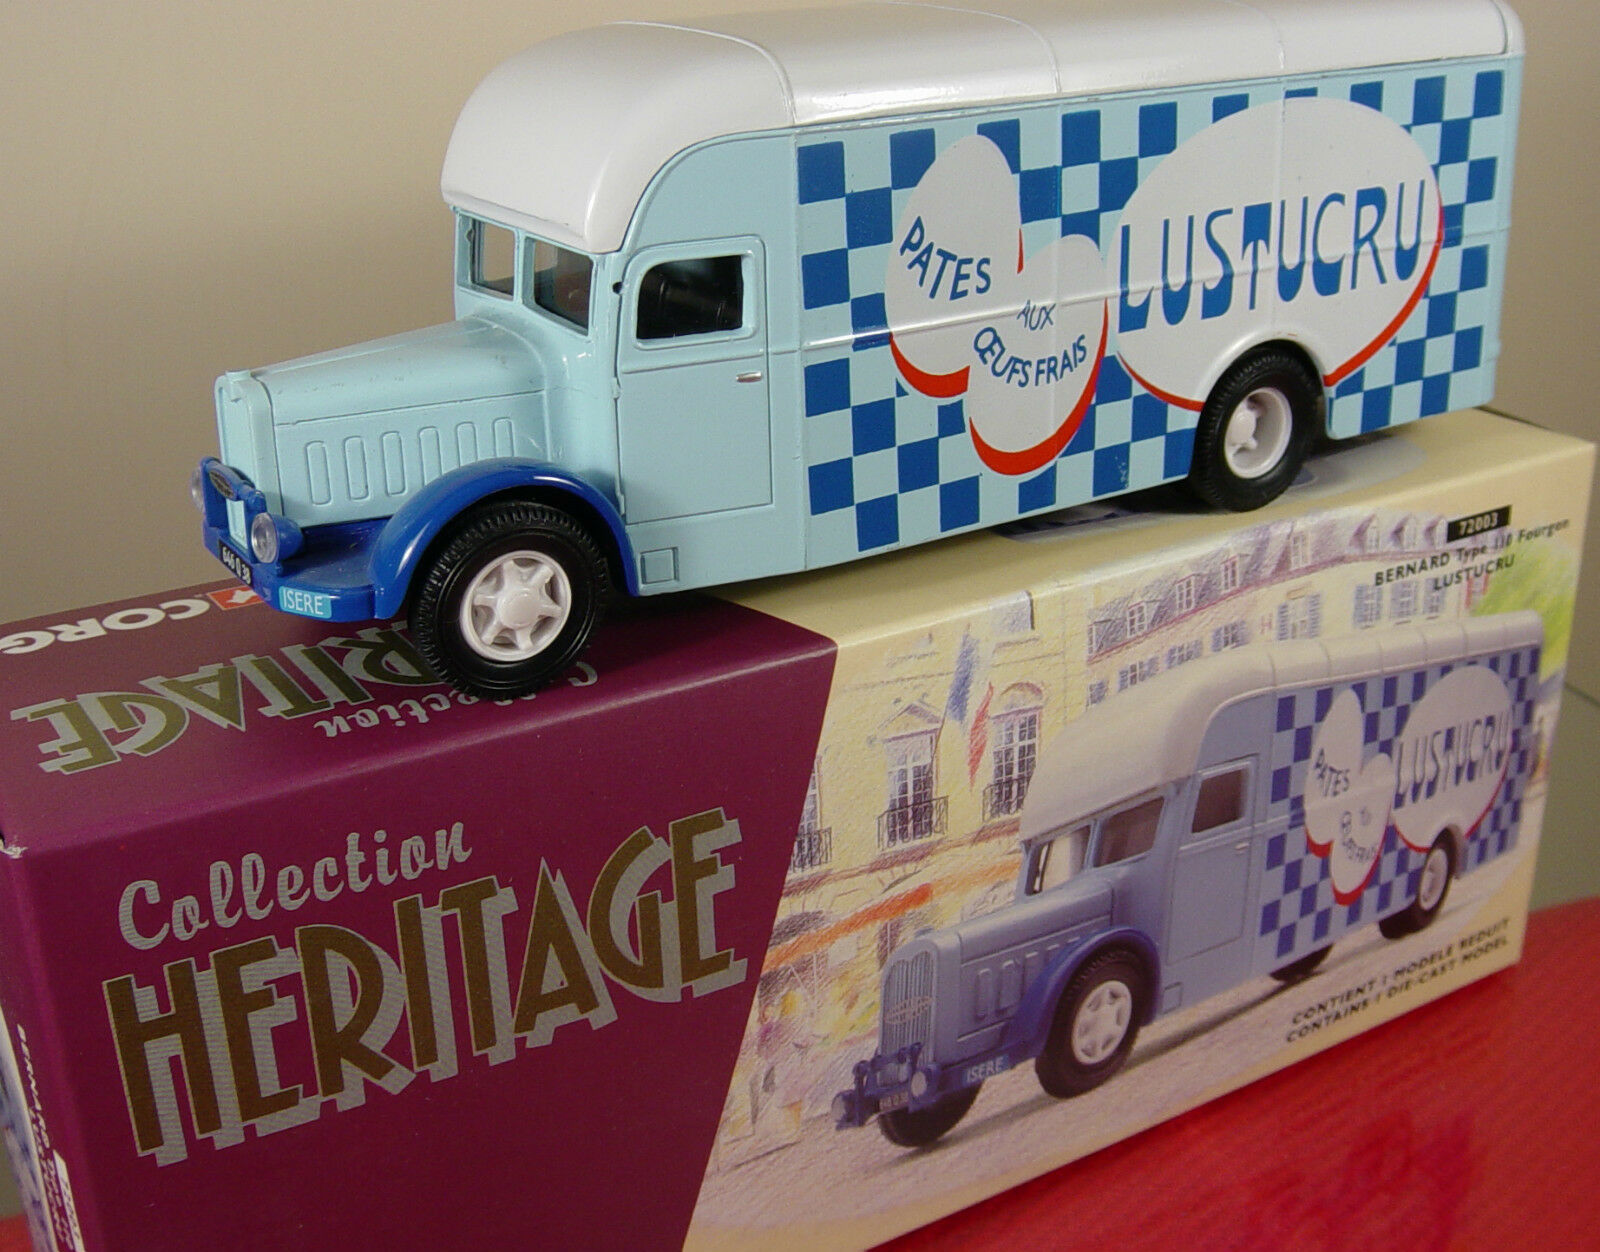 CORGI 72003  FRENCH COLLECTION HERITAGE  LUSTUCRU VAN   1 50 SCALE  MINT BOXED